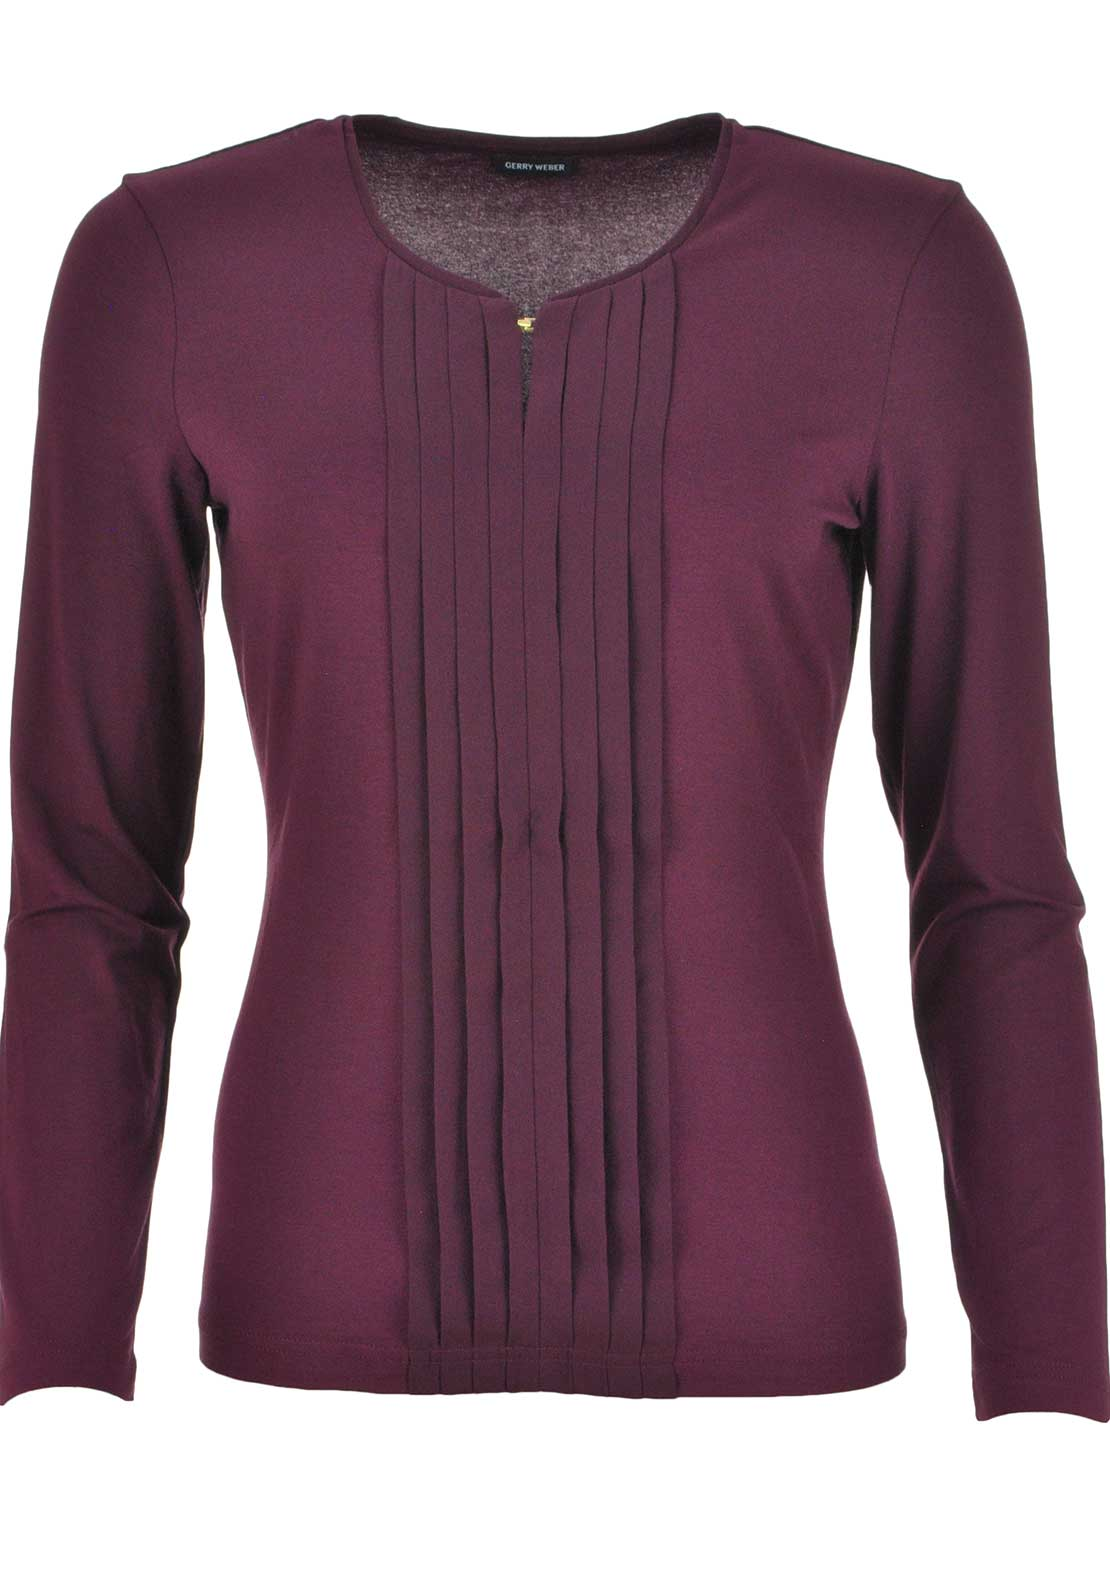 Gerry Weber Pleated Panel Long Sleeve T-Shirt, Berry